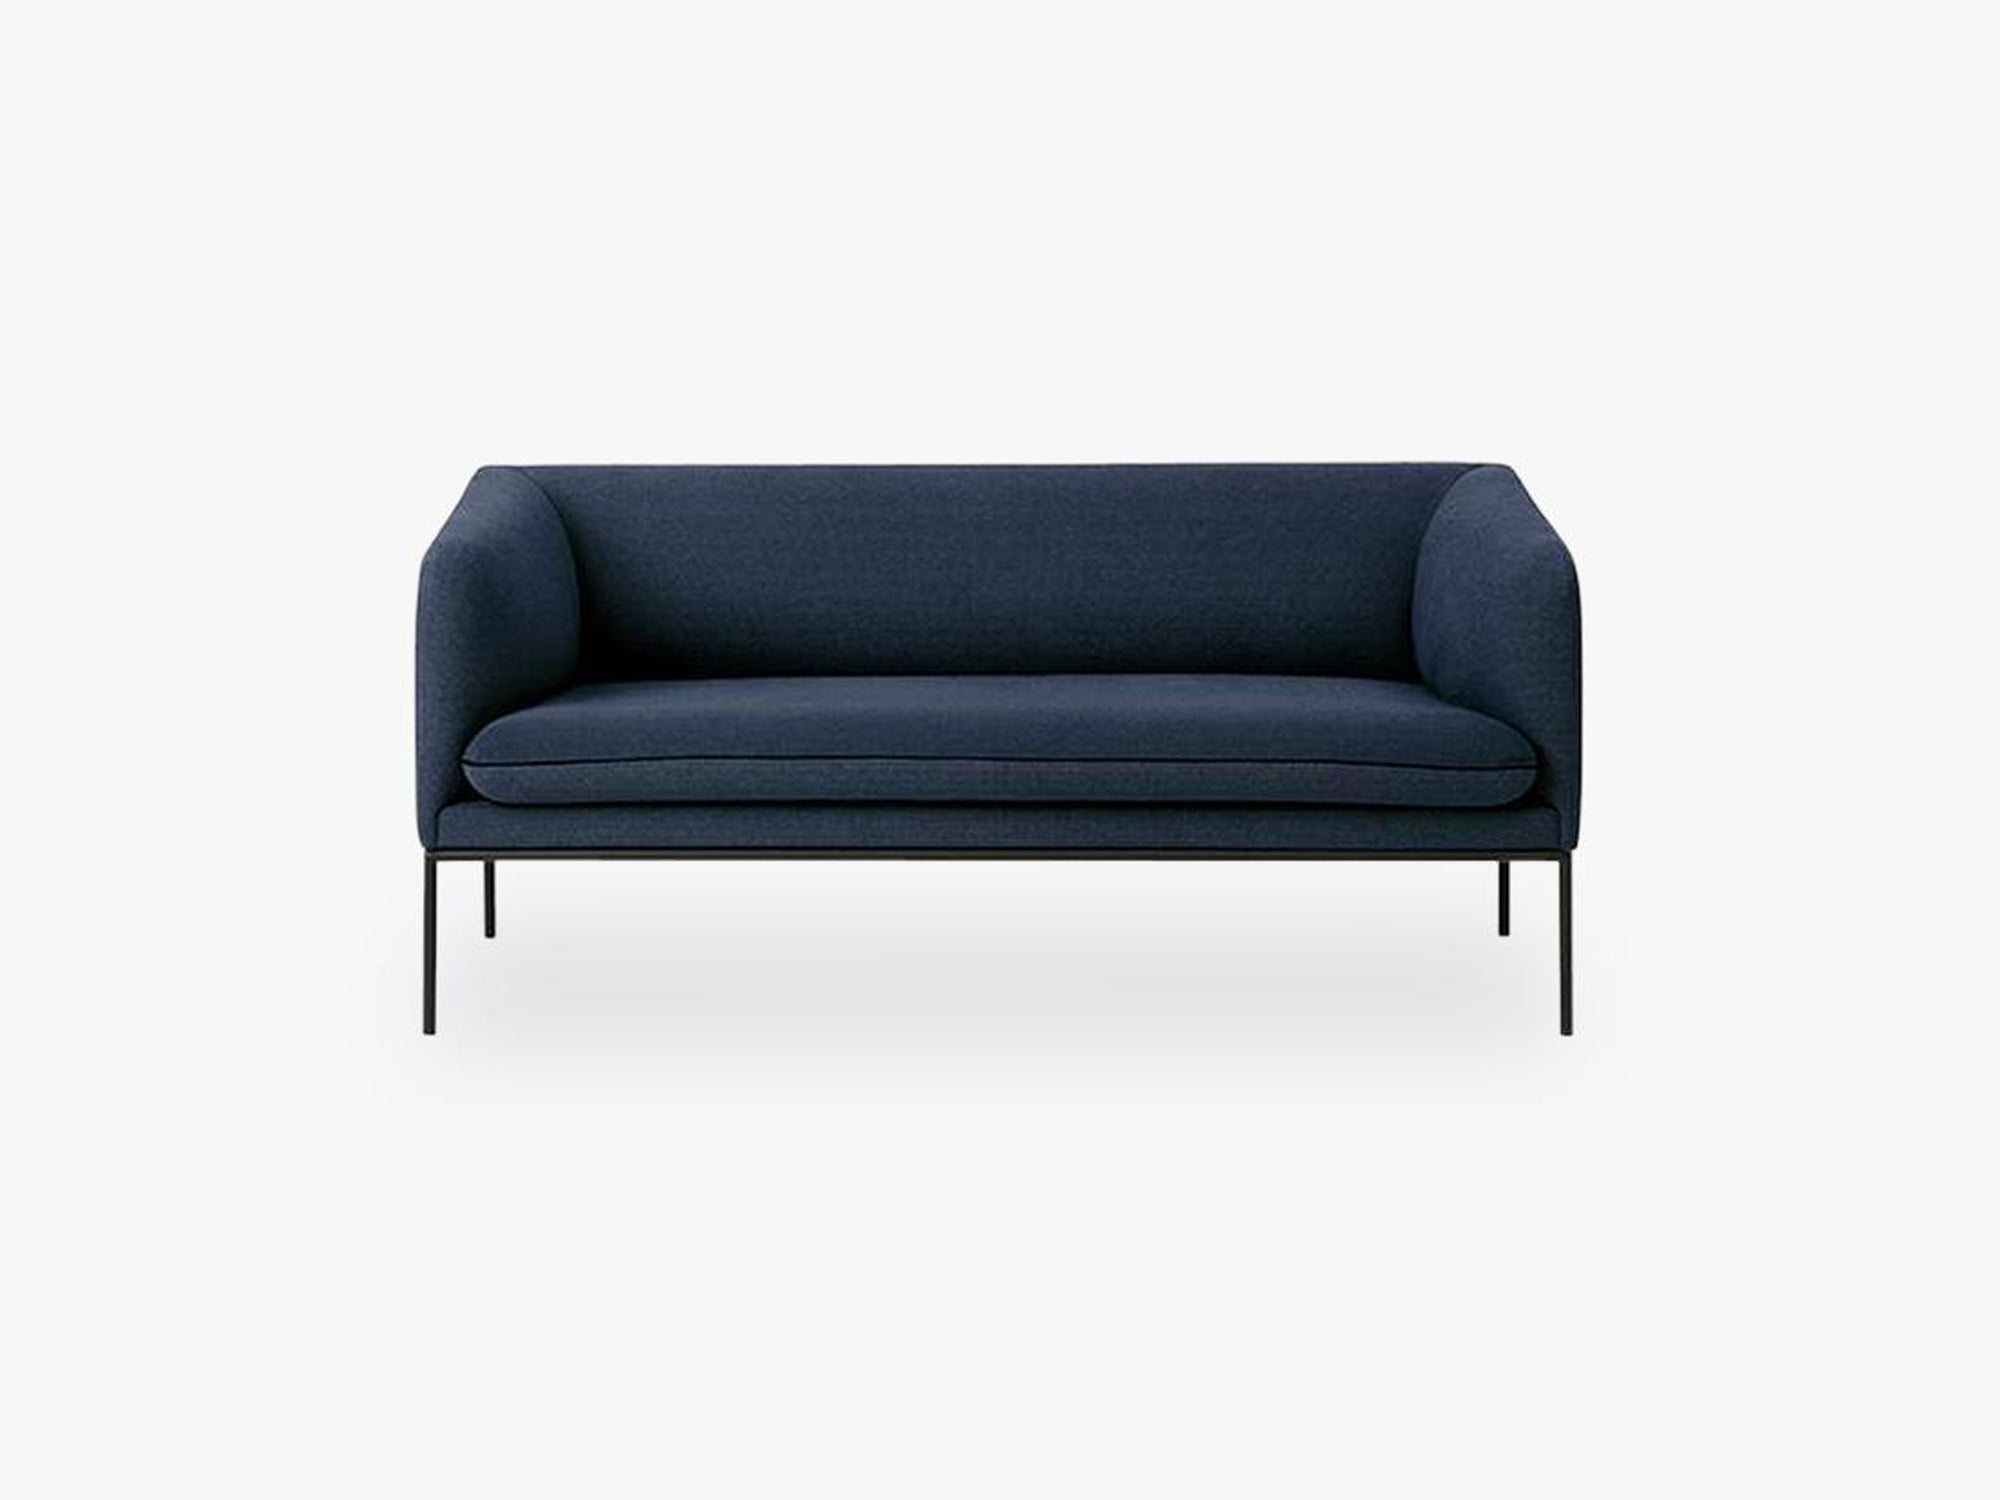 Turn Sofa 2 Fiord, Solid Dark Blue fra Ferm Living